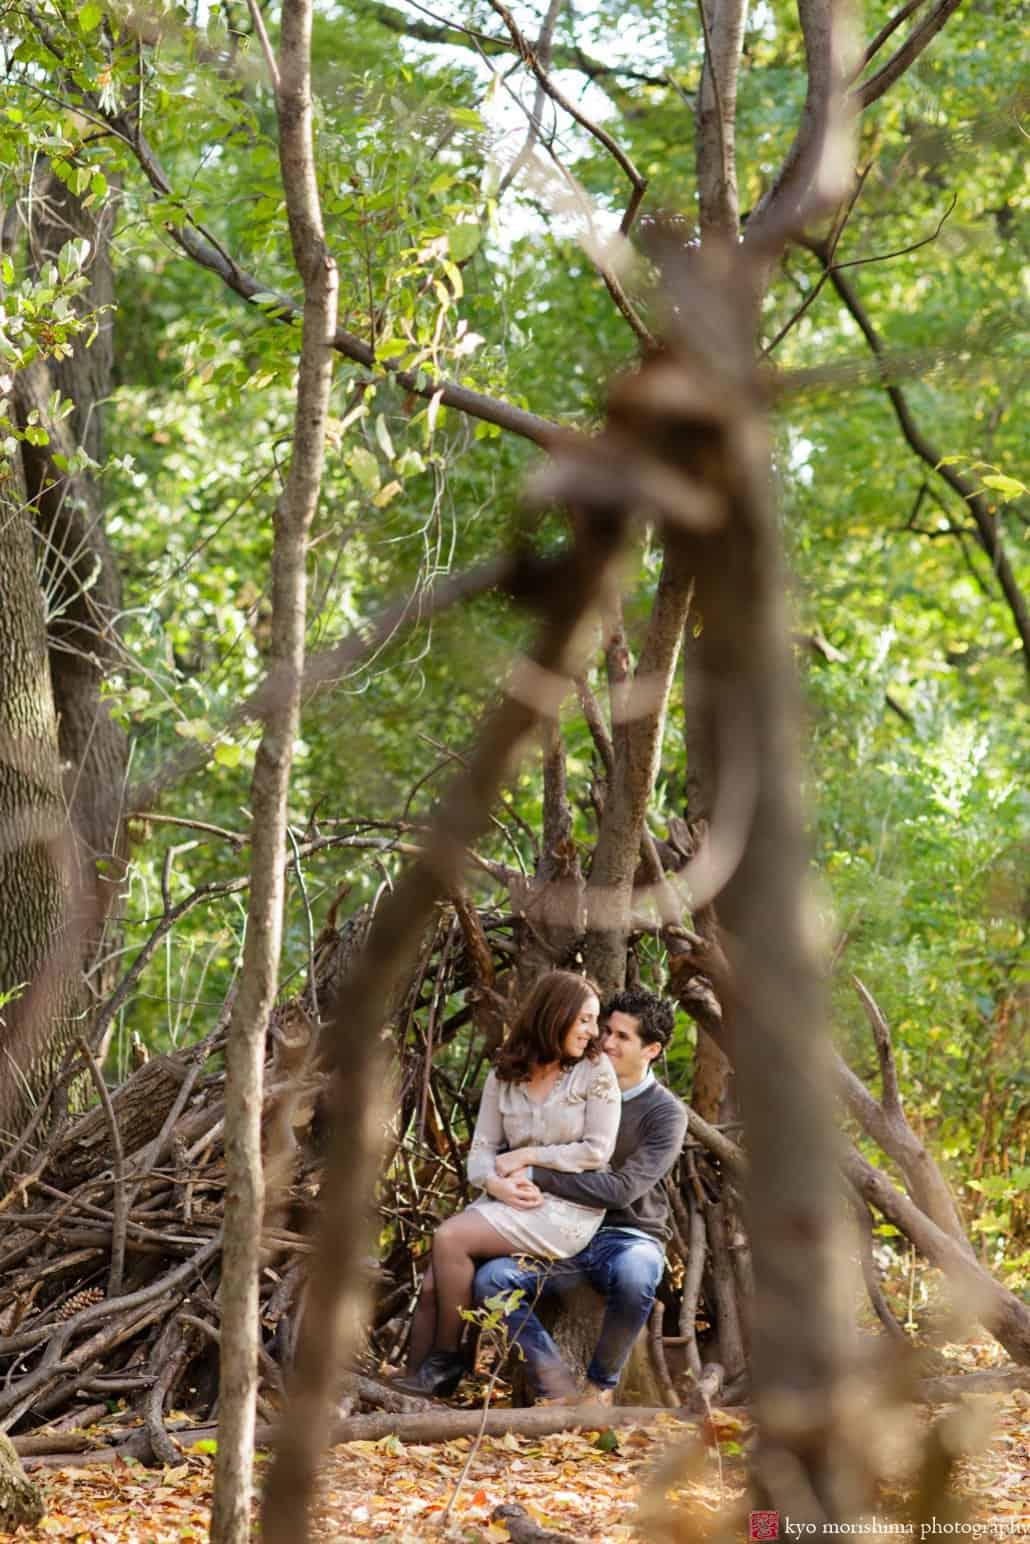 Prospect Park engagement session at a tree root lean-to photographed by Kyo Morishima